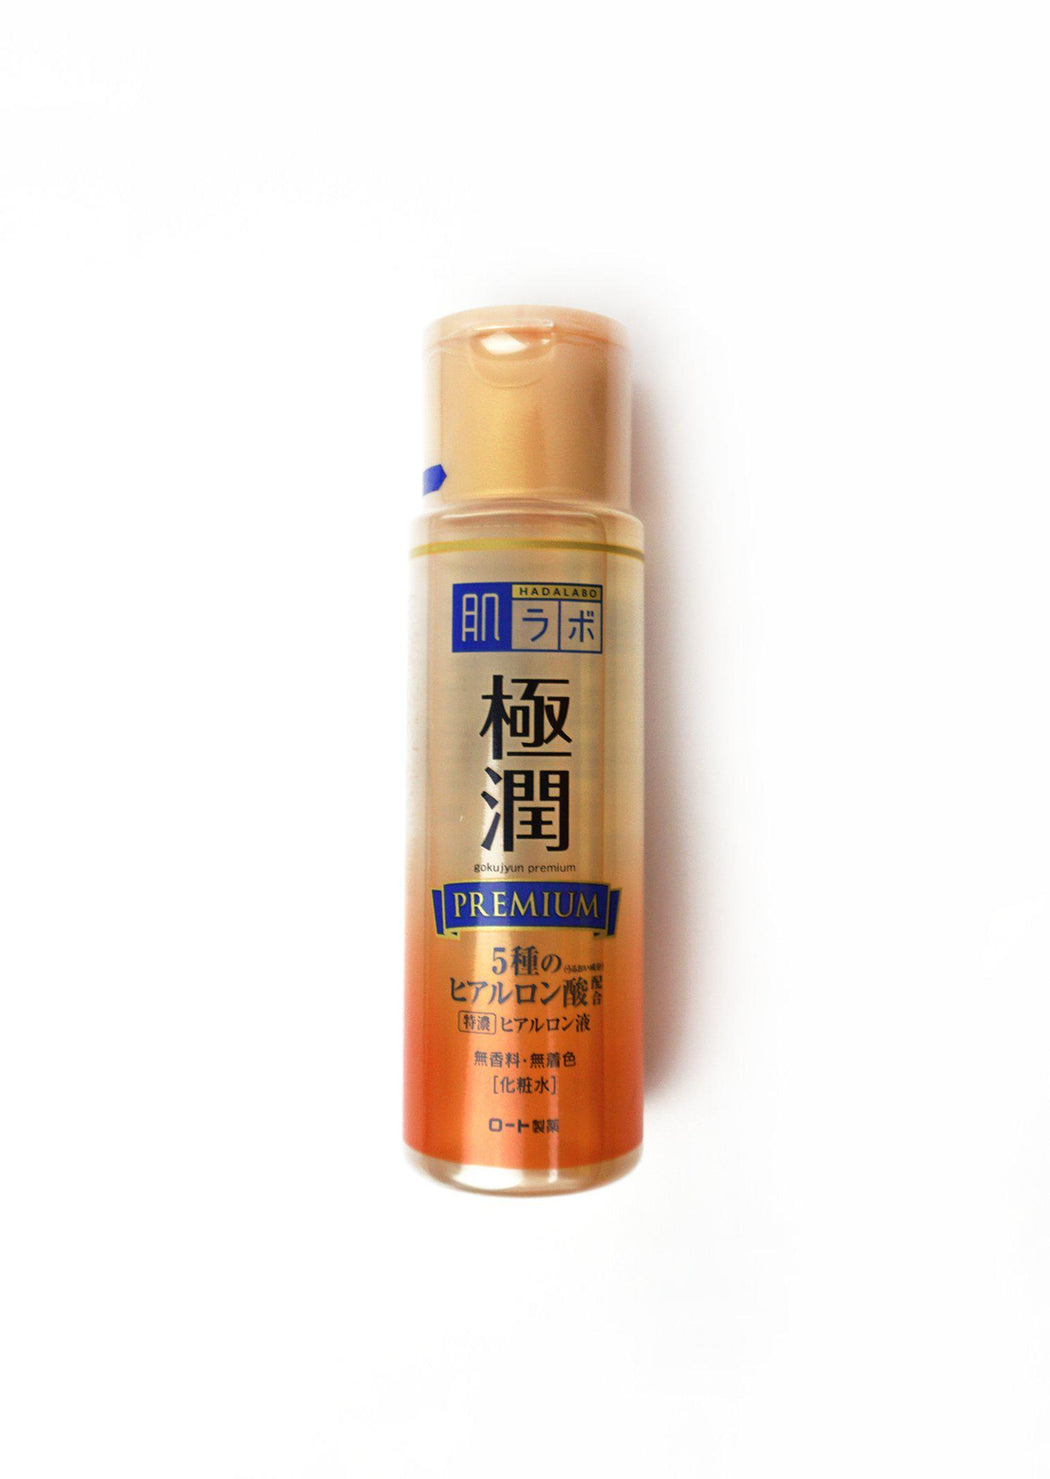 Hada Labo Goku-Jyun Premium Lotion-Hada Labo-Yuuka House Korean and Japanese skincare and beauty